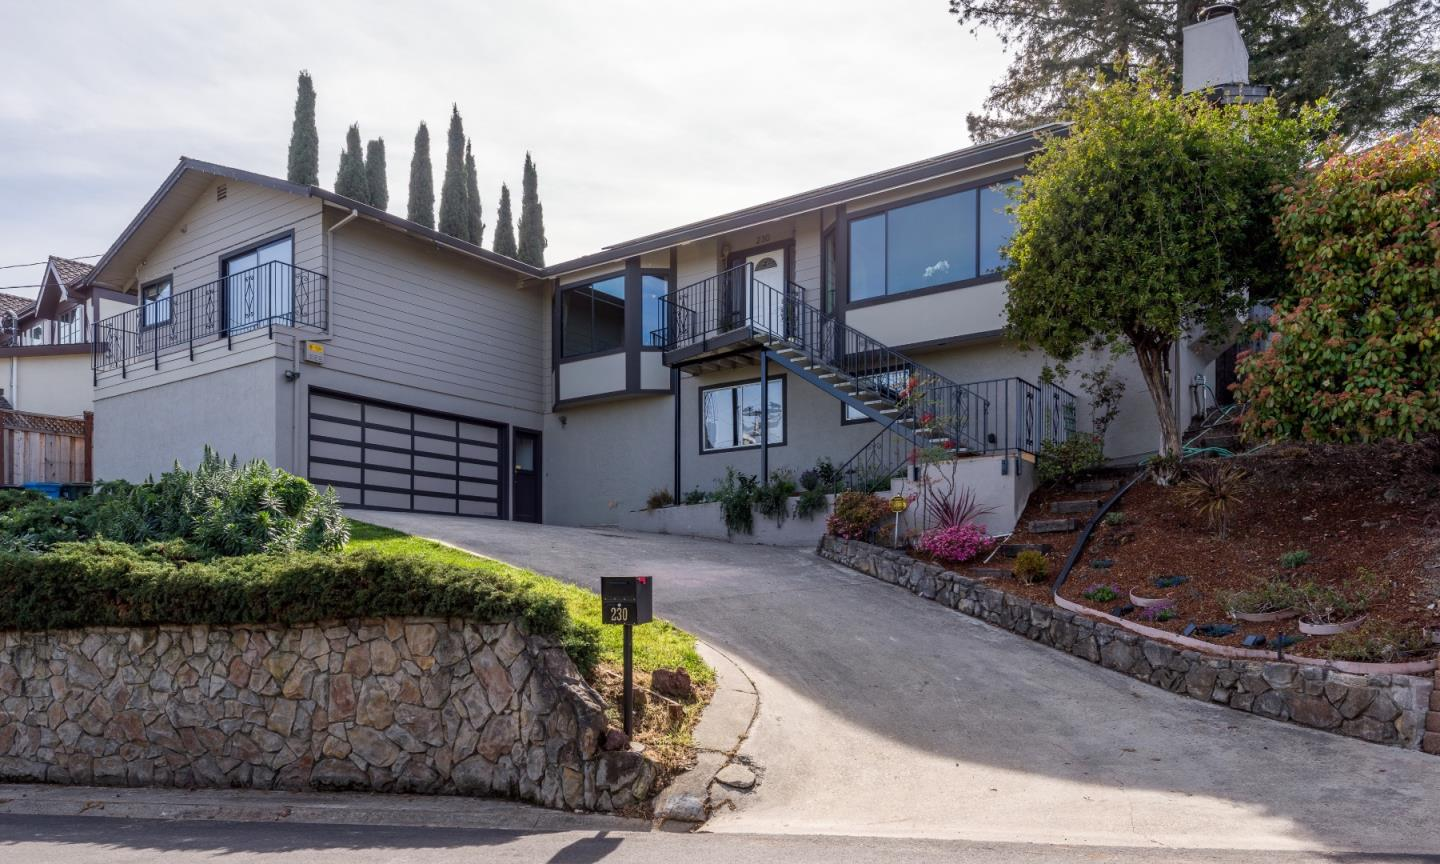 Single Family Home for Sale at 230 Hillcrest Road 230 Hillcrest Road San Carlos, California 94070 United States